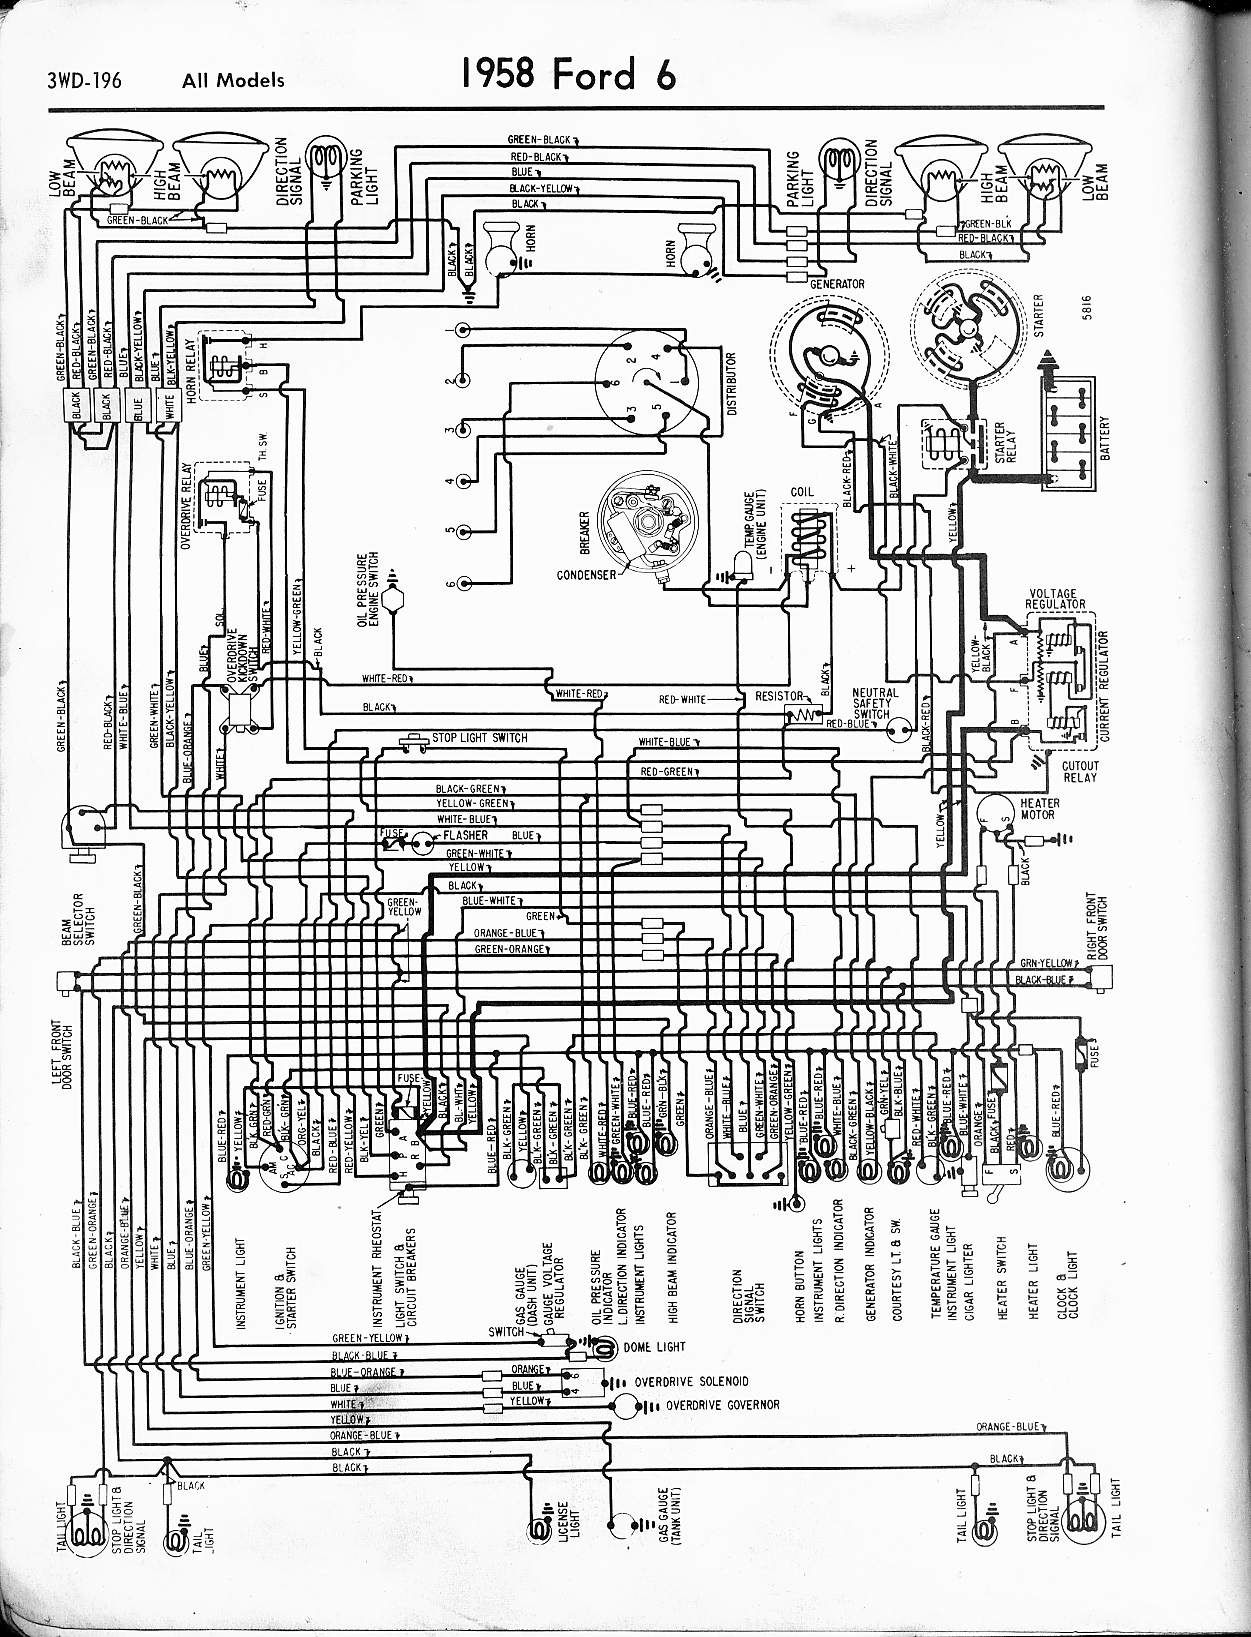 wiring diagrams of 1957 plymouth v8 all models wiring diagram for you wiring diagrams of 1959 mercury v8 all models [ 1251 x 1637 Pixel ]